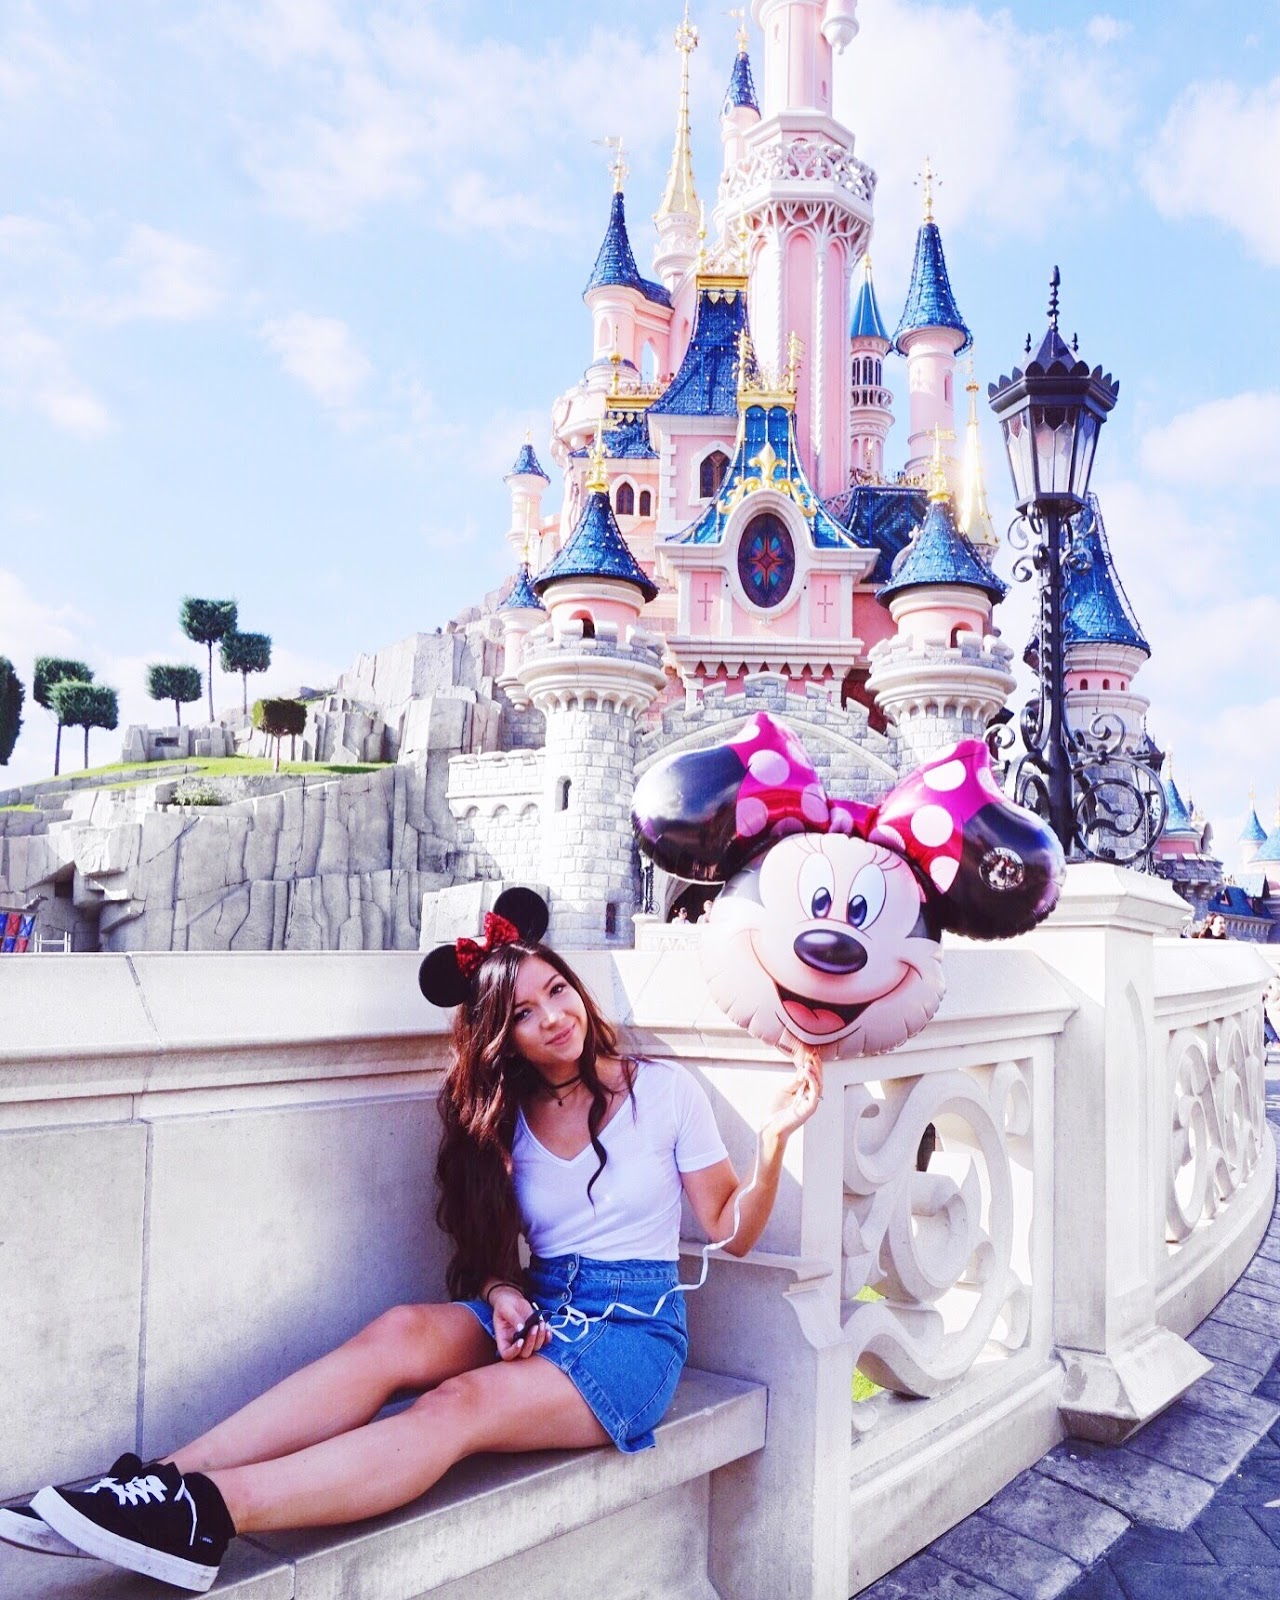 Outside Table And Chairs For 2 Counter Height Bar The Most Instagrammable Places At Disneyland Paris - Dizzybrunette